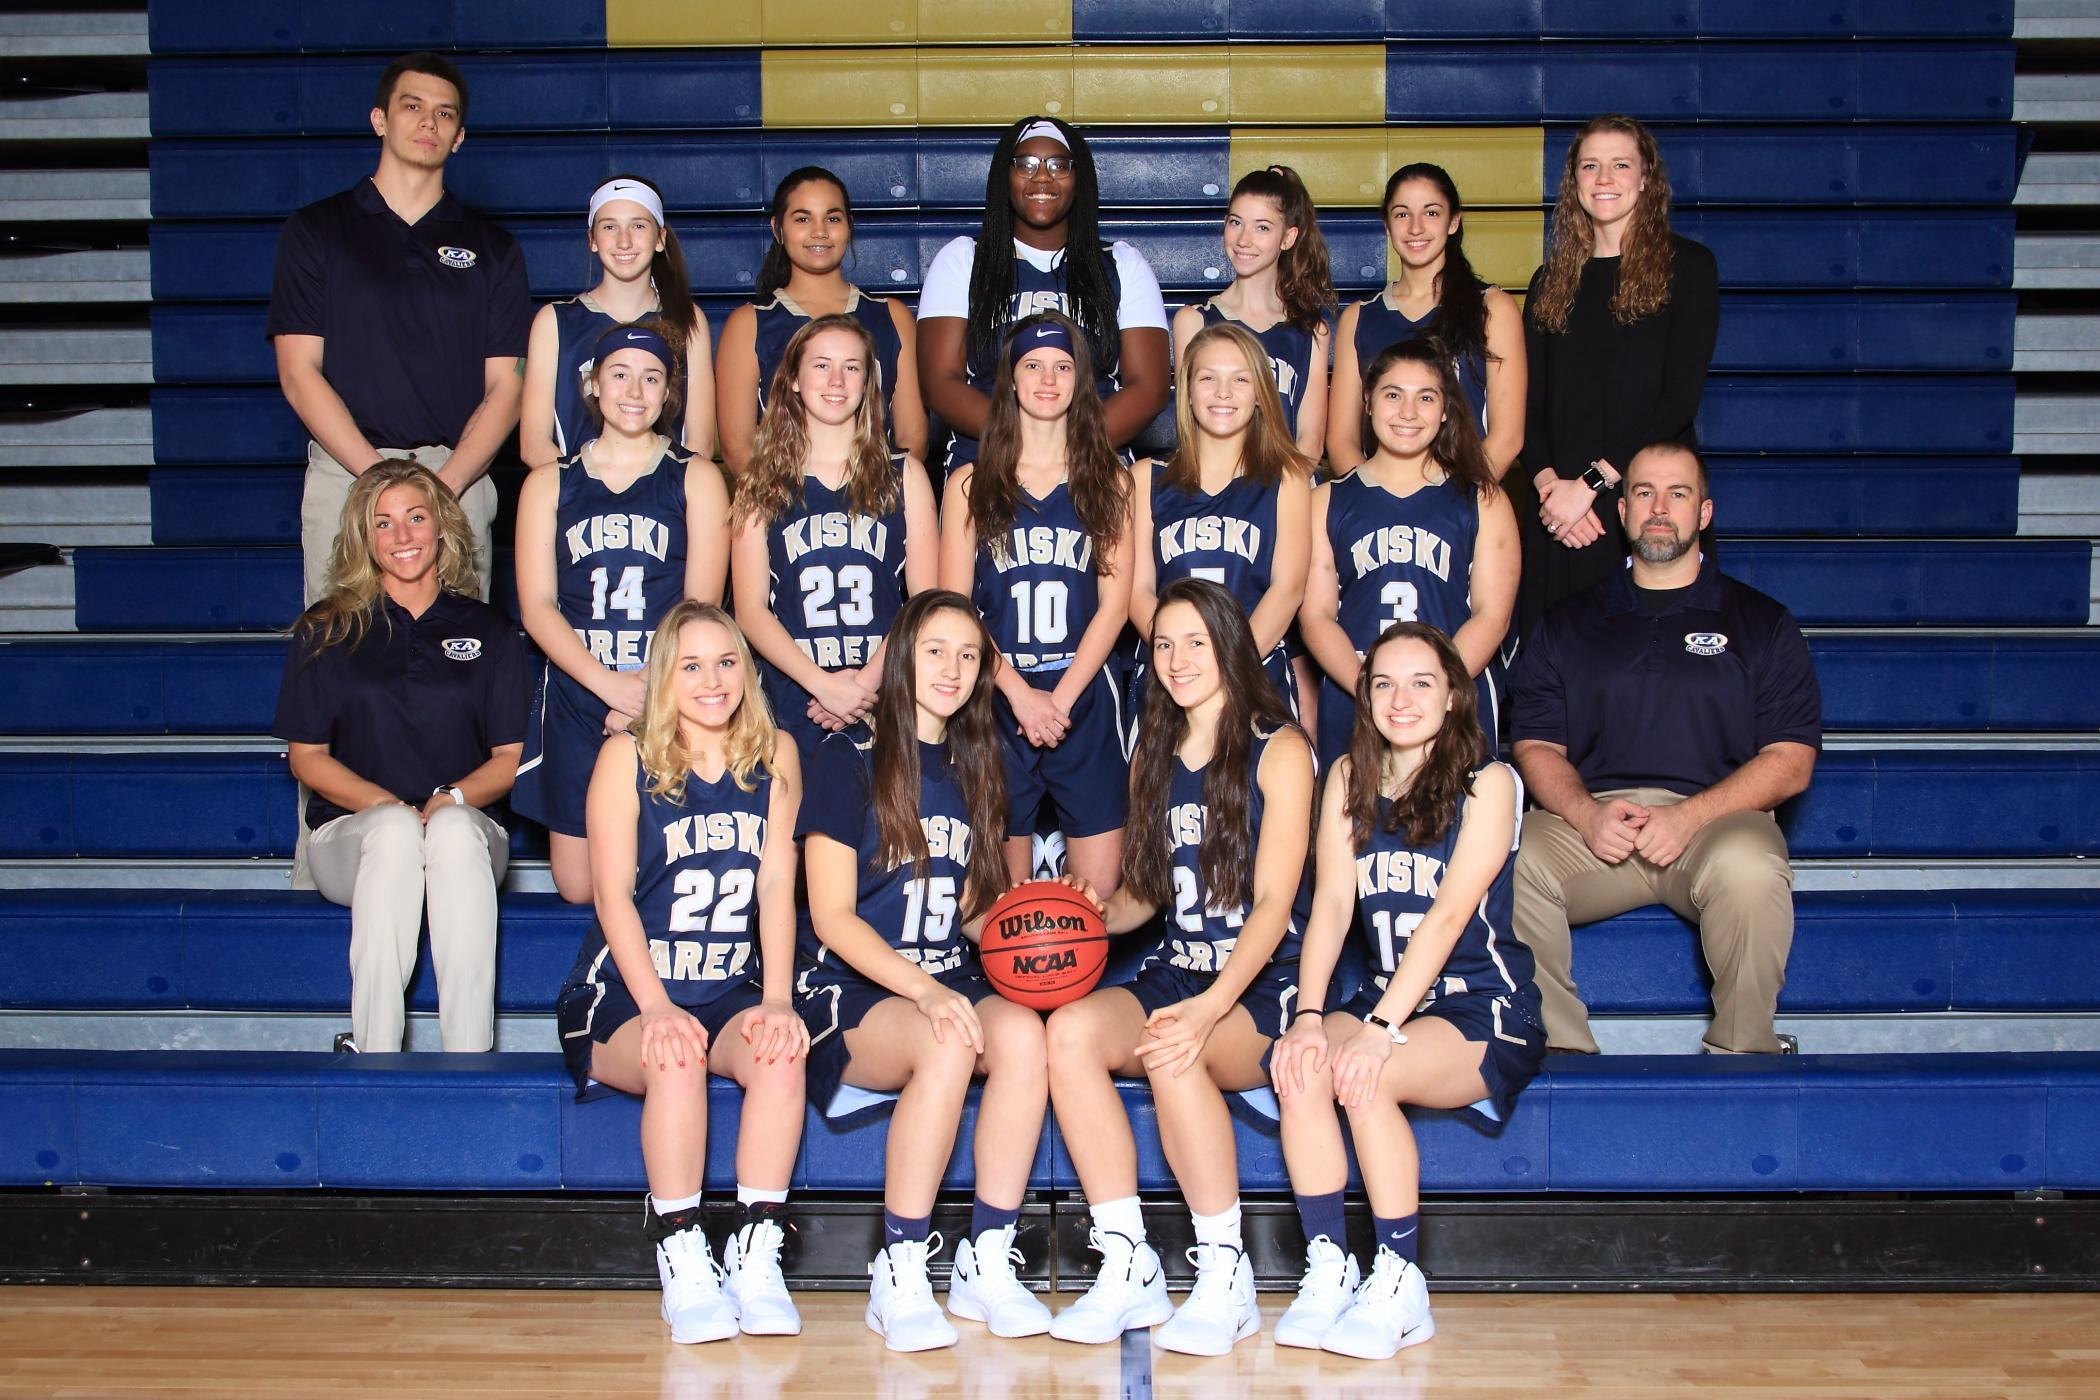 ad514d05e 2018-19 JV Varsity Girls. Nick Dizon. Head Girls Varsity Basketball Coach